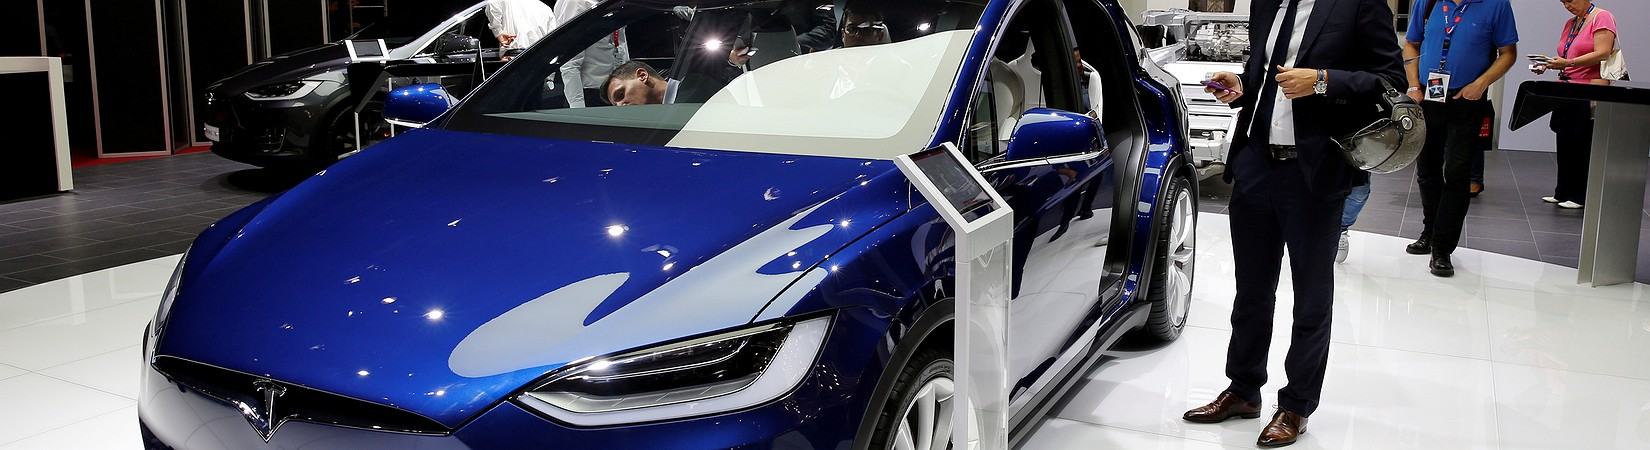 Tesla shares surge again on news of new vehicles